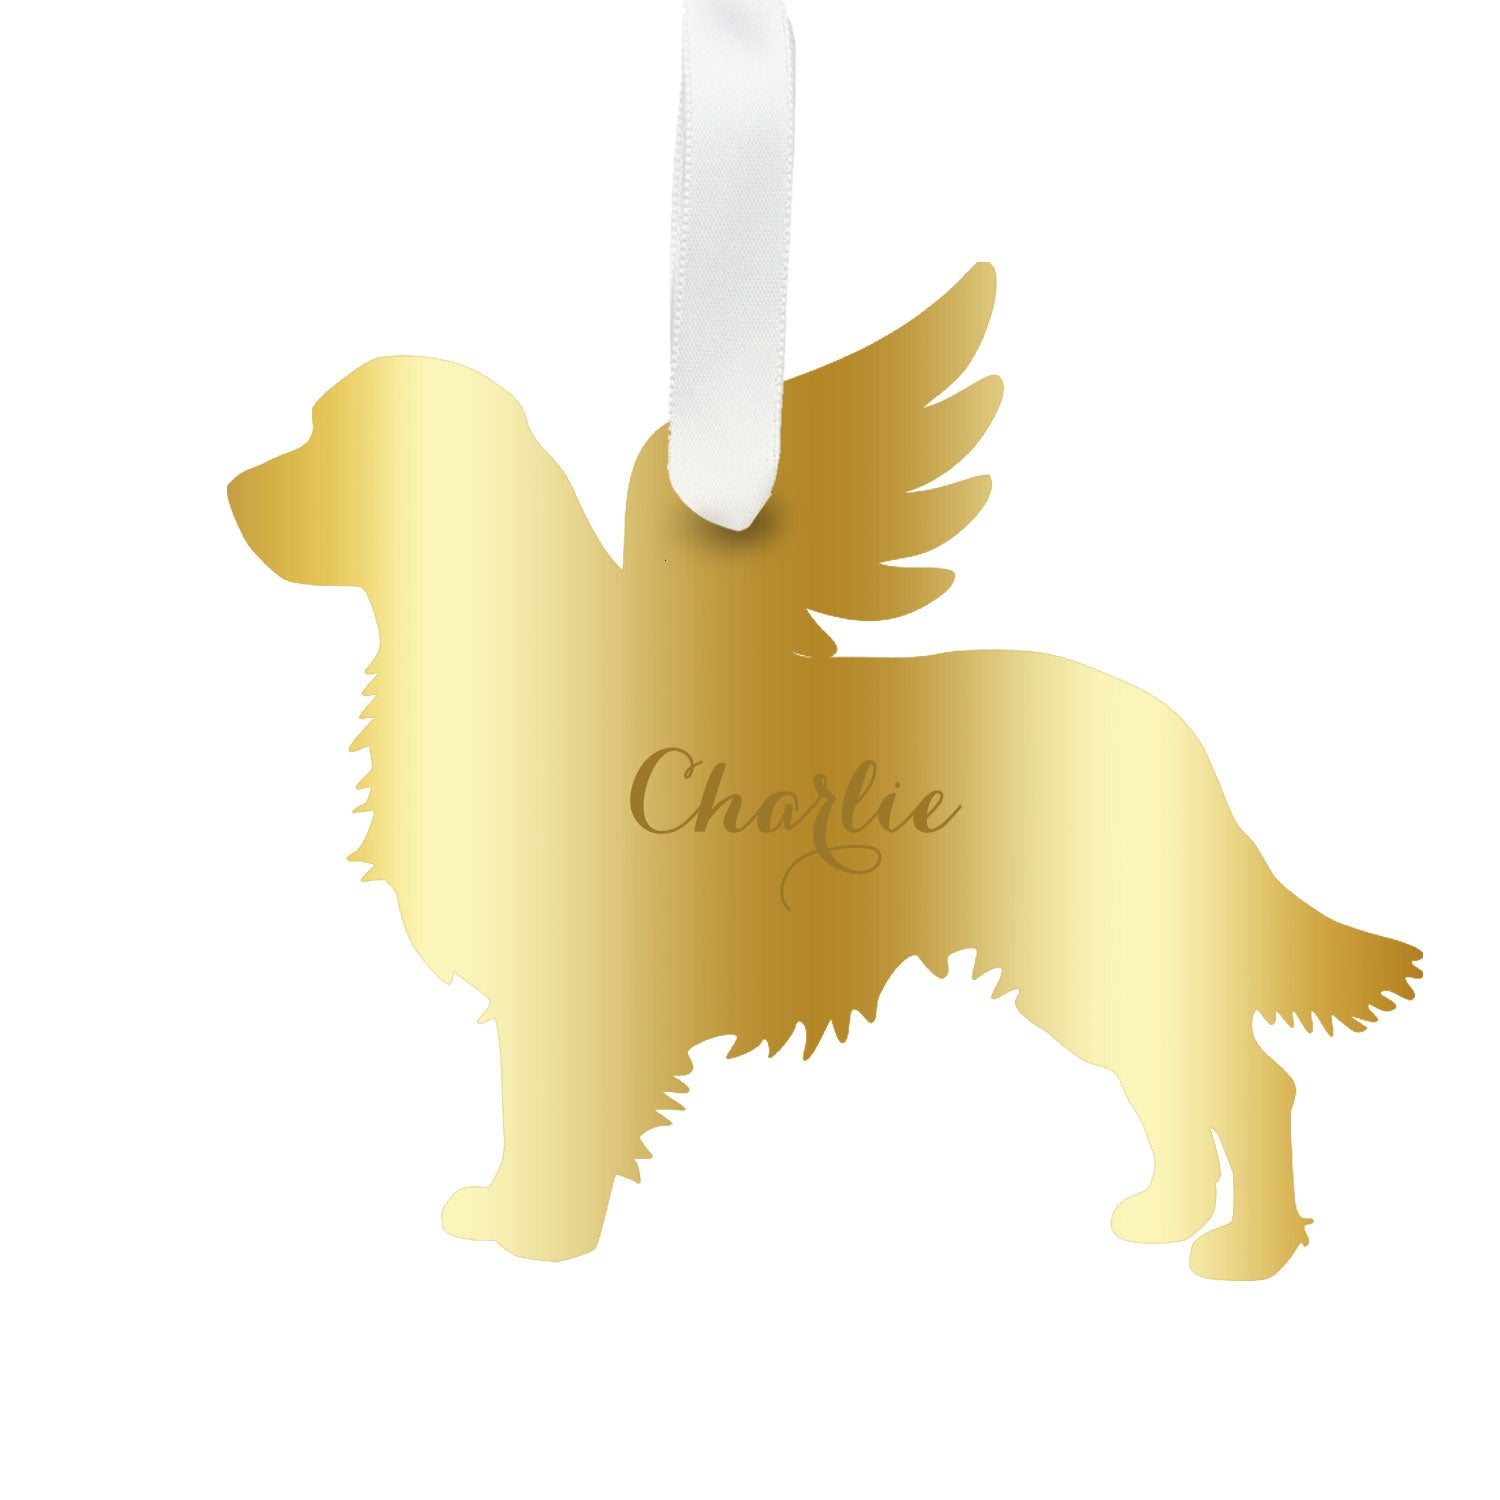 Moon and Lola - Personalized Angel Golden Retriever Ornament with wings in gold